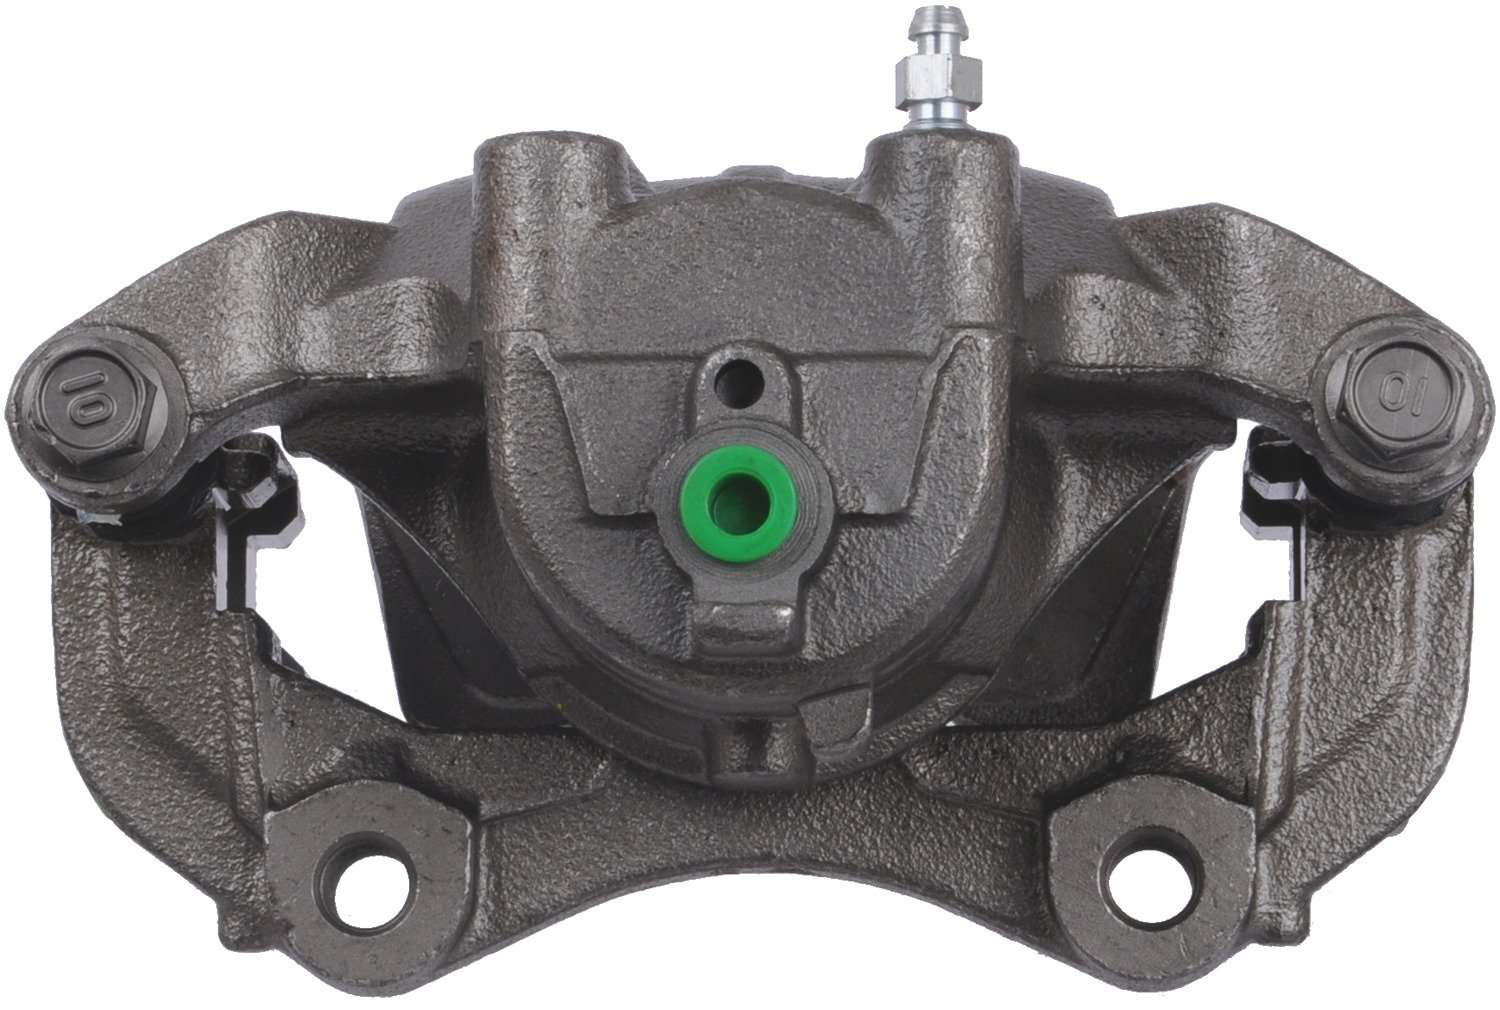 A1 Cardone 19-B6861 Unloaded Brake Caliper with Bracket Remanufactured